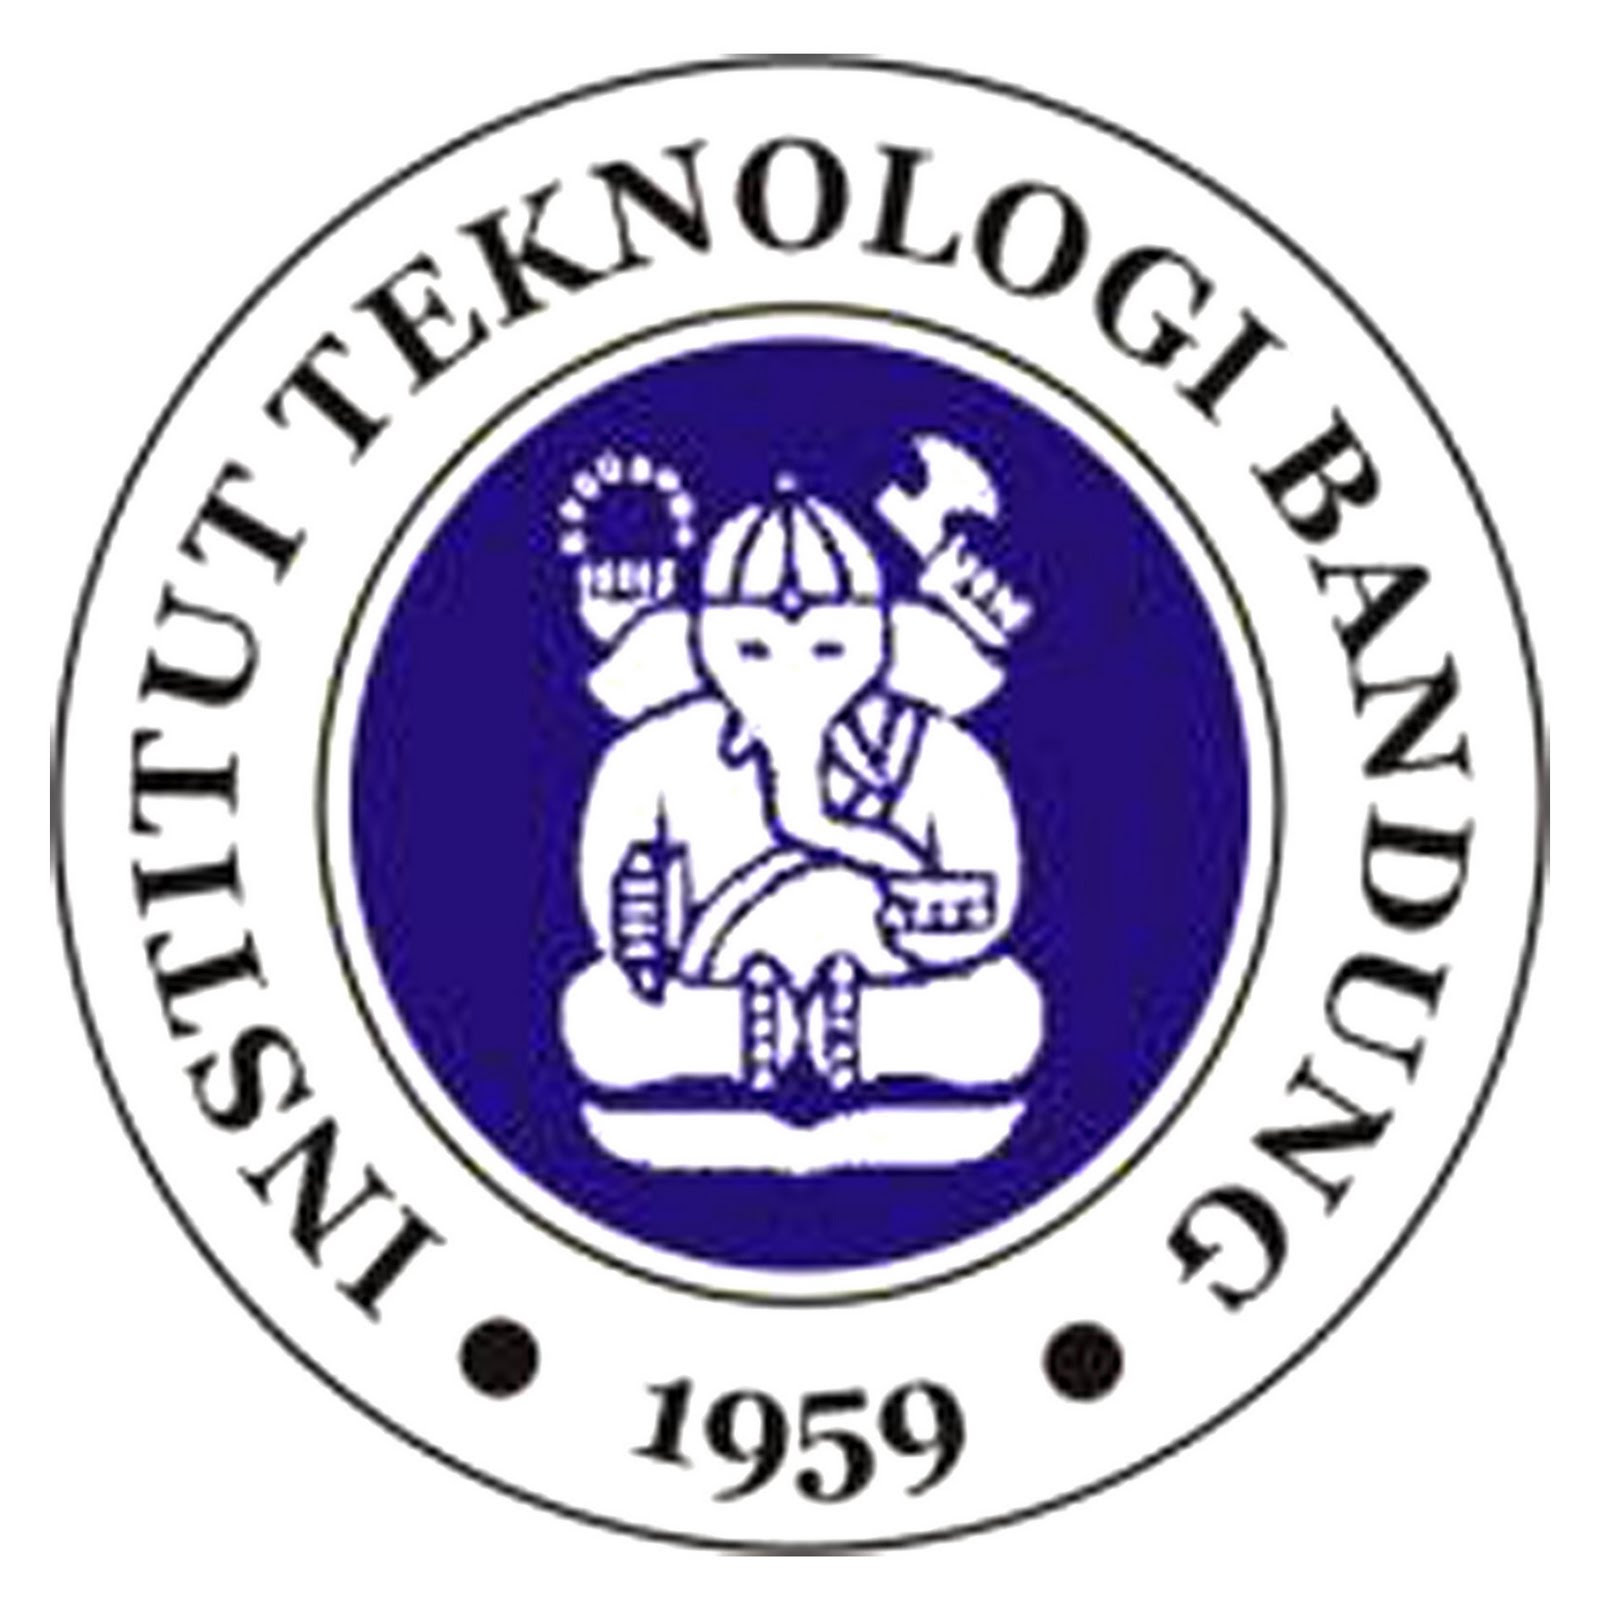 http://rionaldoputra.files.wordpress.com/2011/05/logo-itb.jpg